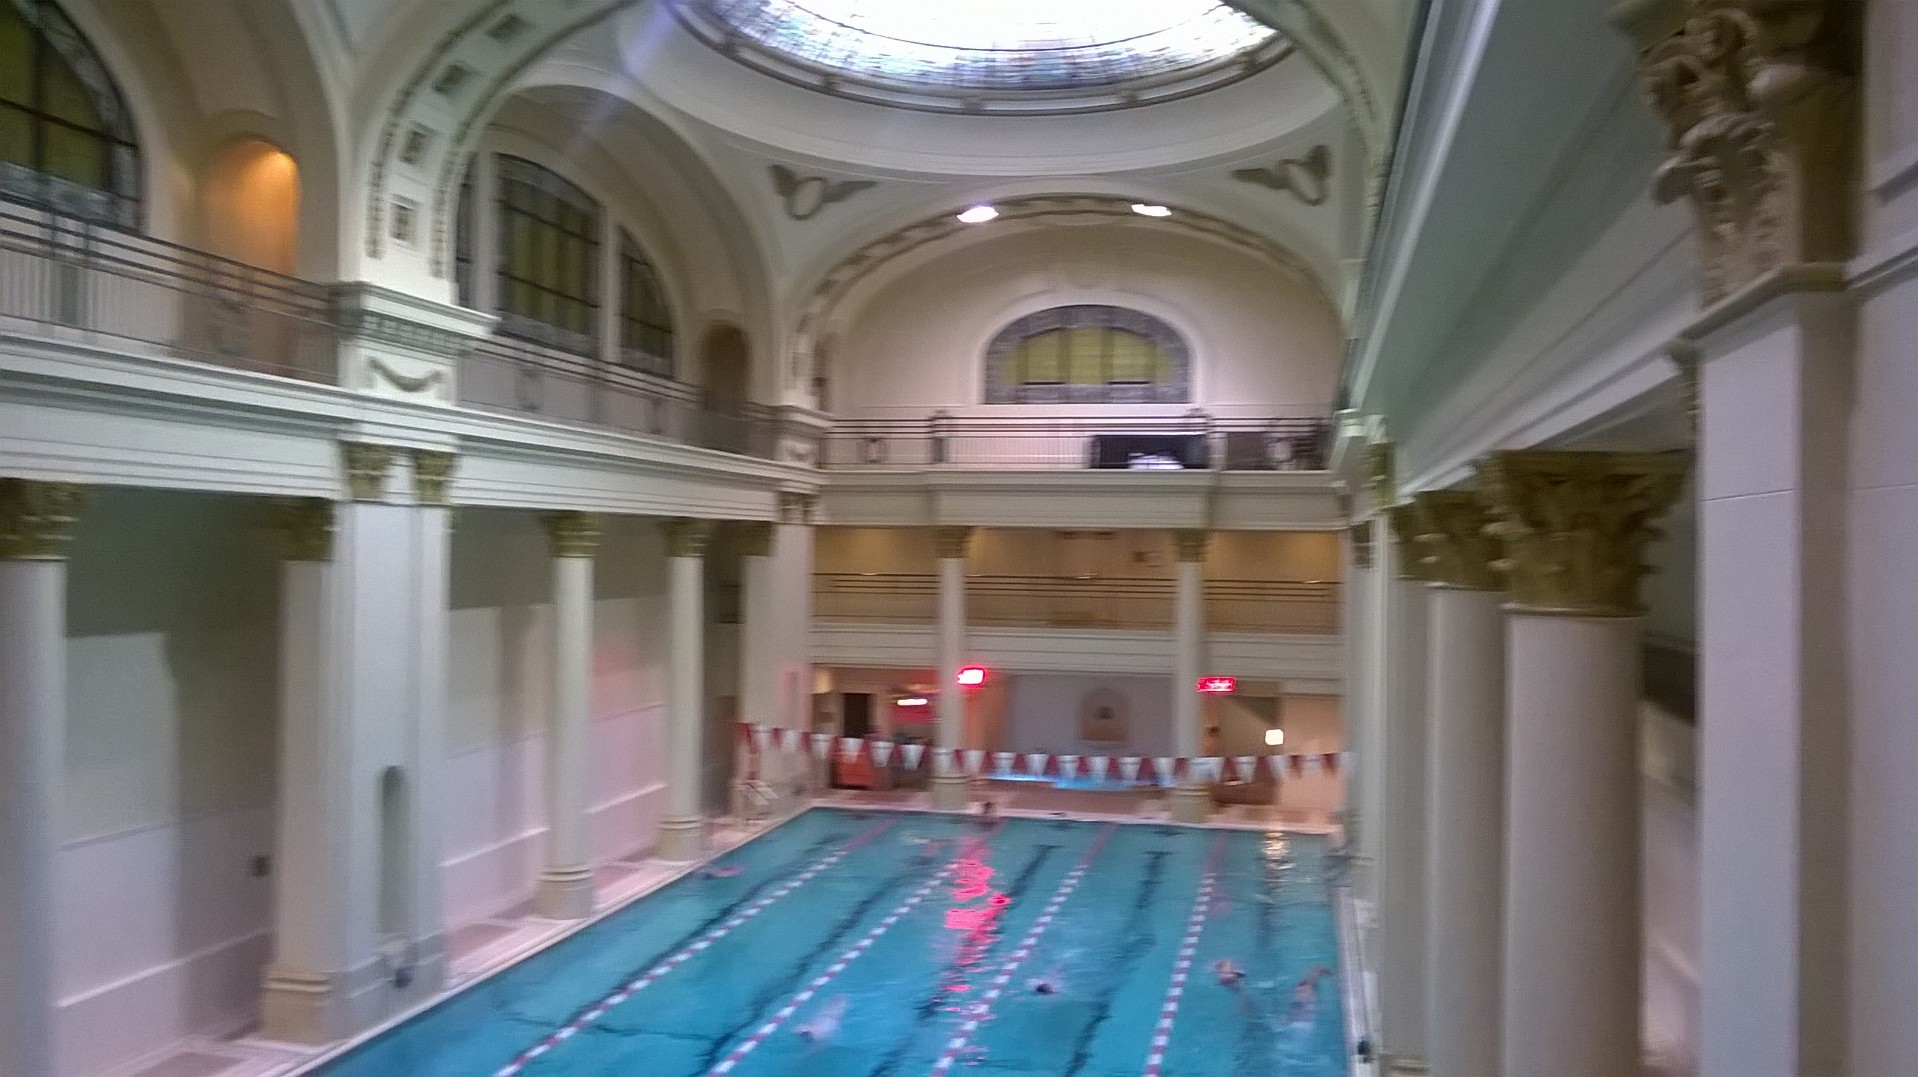 0225 - Olympic Club Natatorium Pool - San Francisco